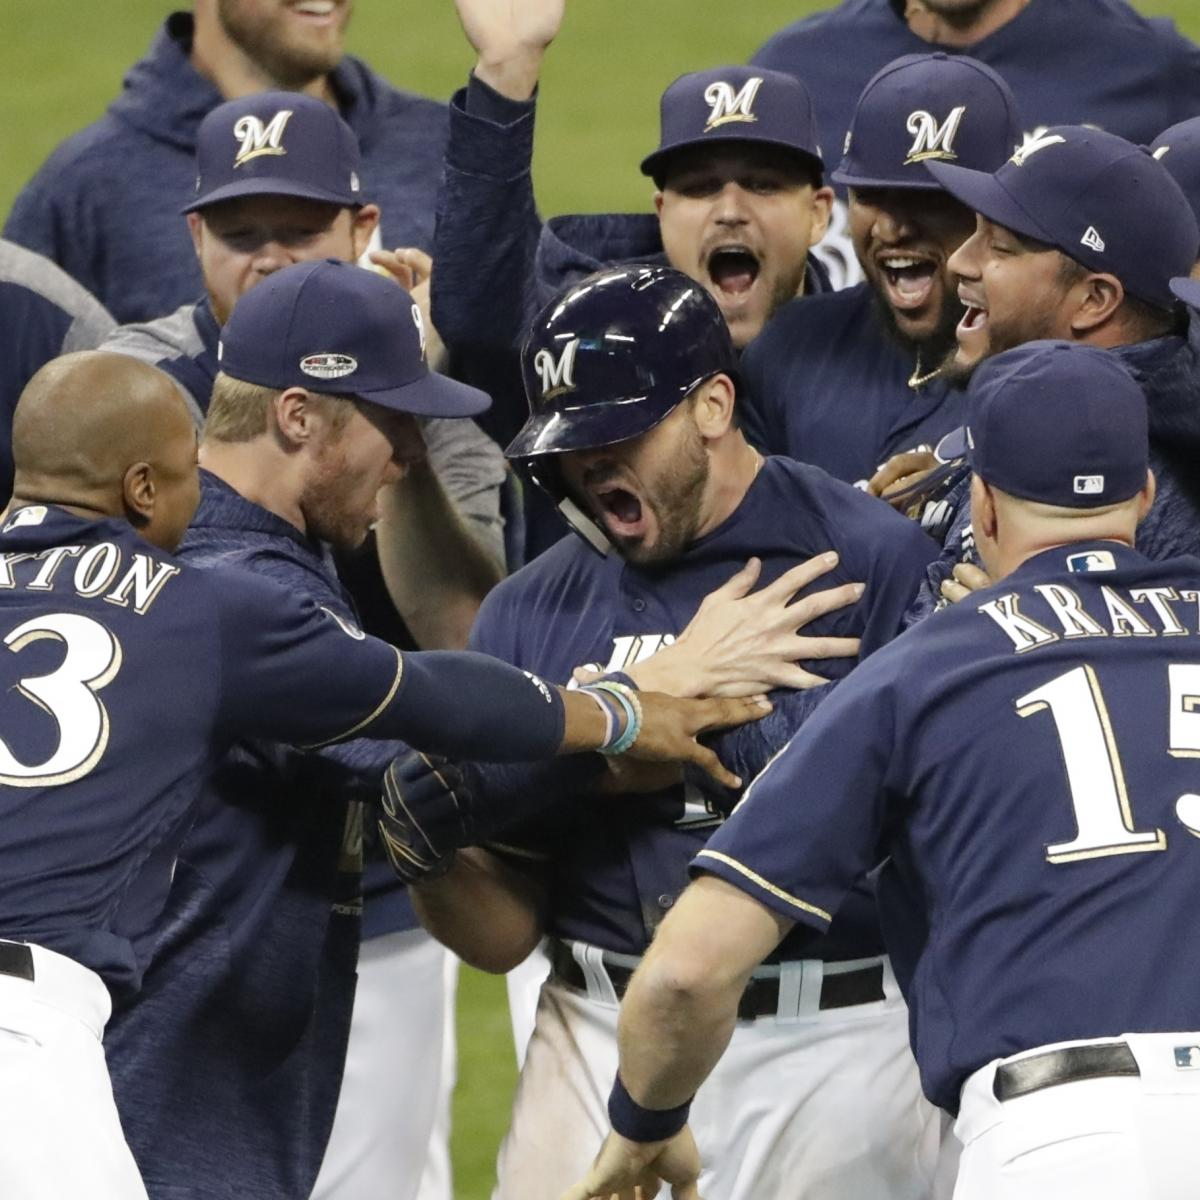 MLB Playoffs 2018: Odds, TV Schedule, Predictions For